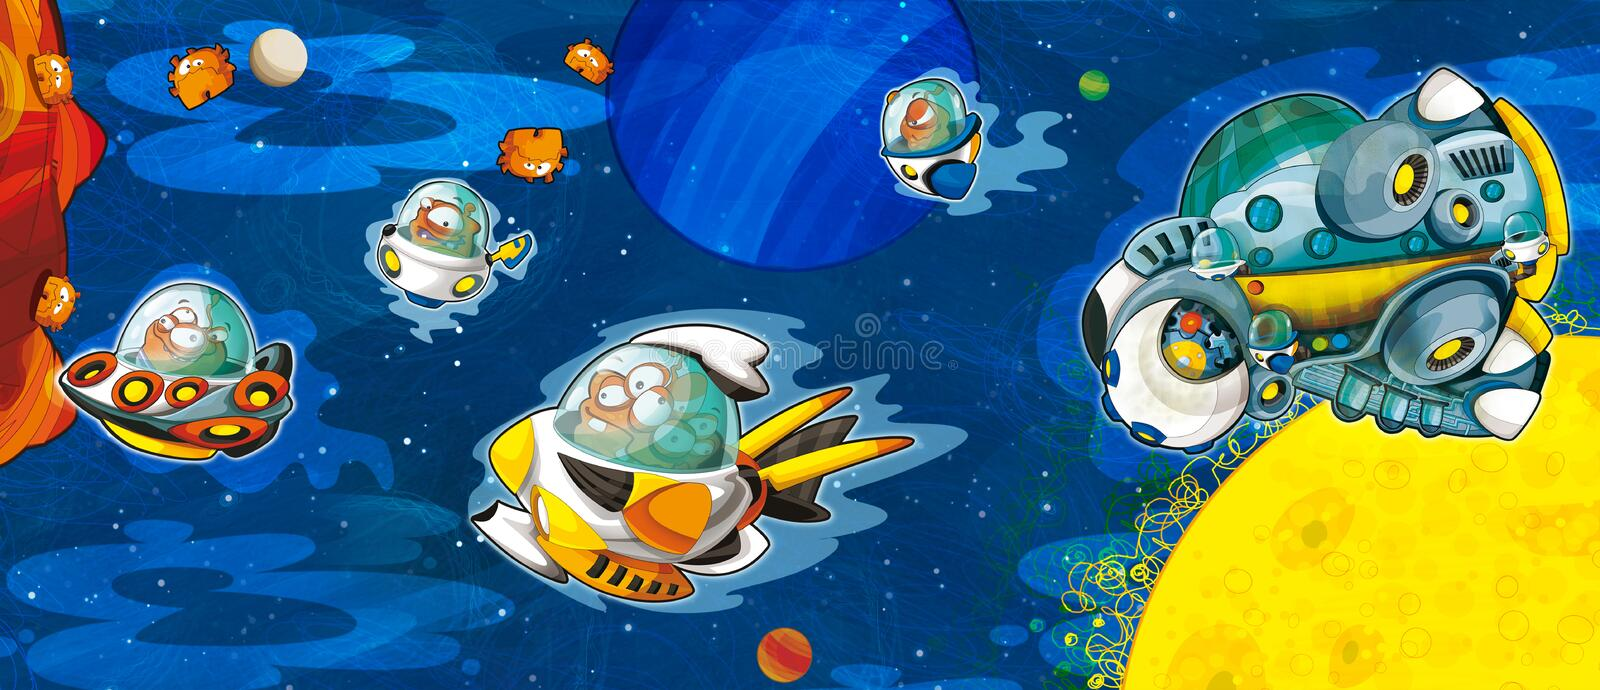 Download The Aliens Subject - Ufo - Star - Kindergarten - Menu - Screen - Space For Text - Happy And Funny Mood - Illustration For The Chil Stock Illustration - Image: 32439712